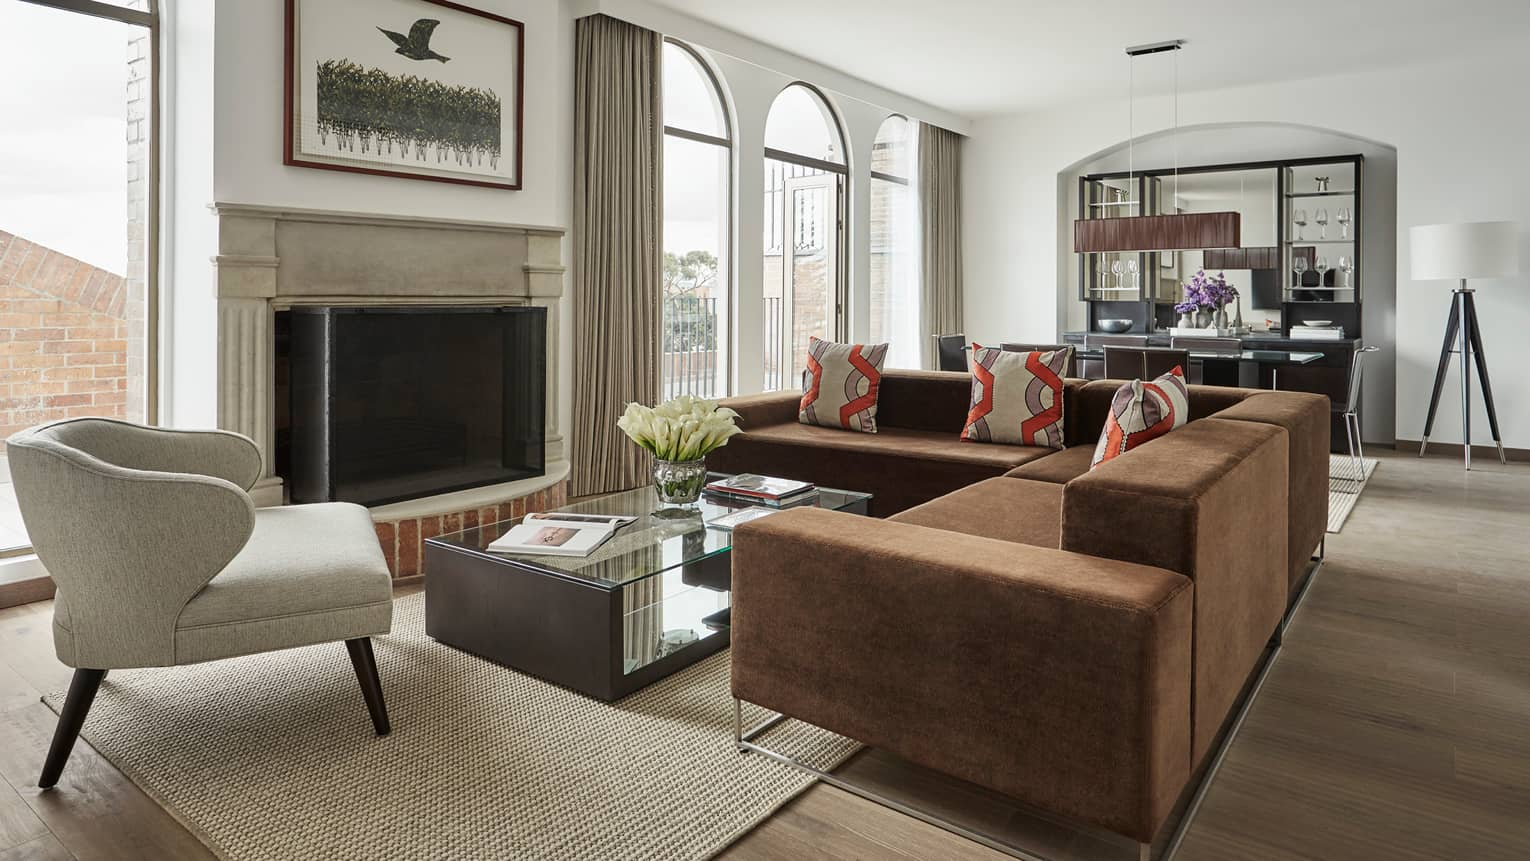 Penthouse Suite living room with L-shaped brown sofa, white armchair, glass coffee table, fireplace